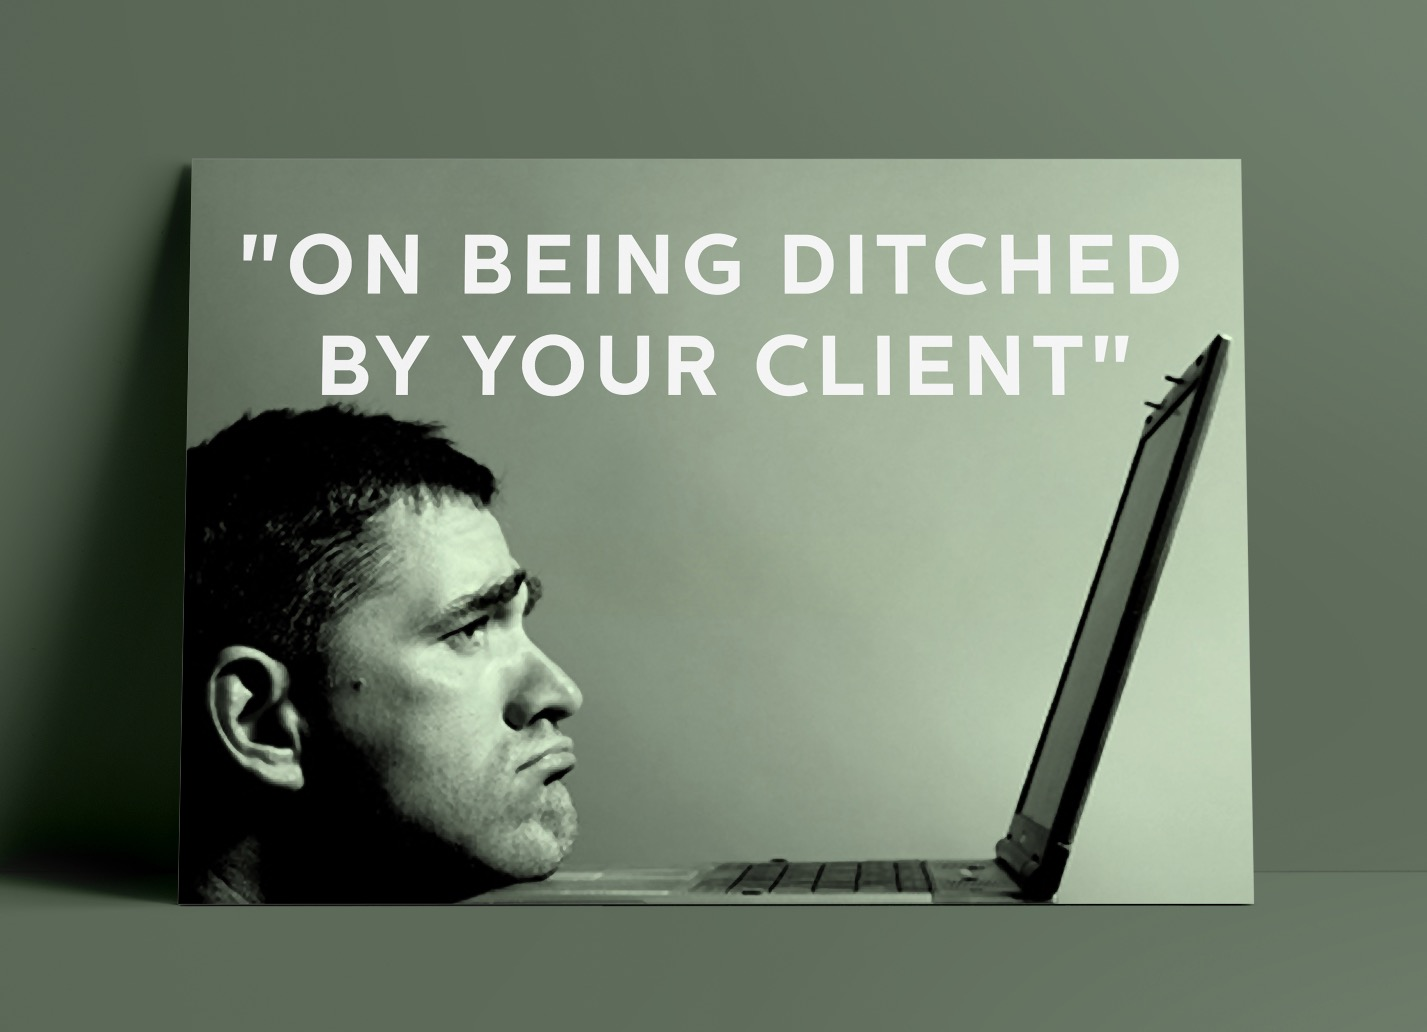 being ditched by your client